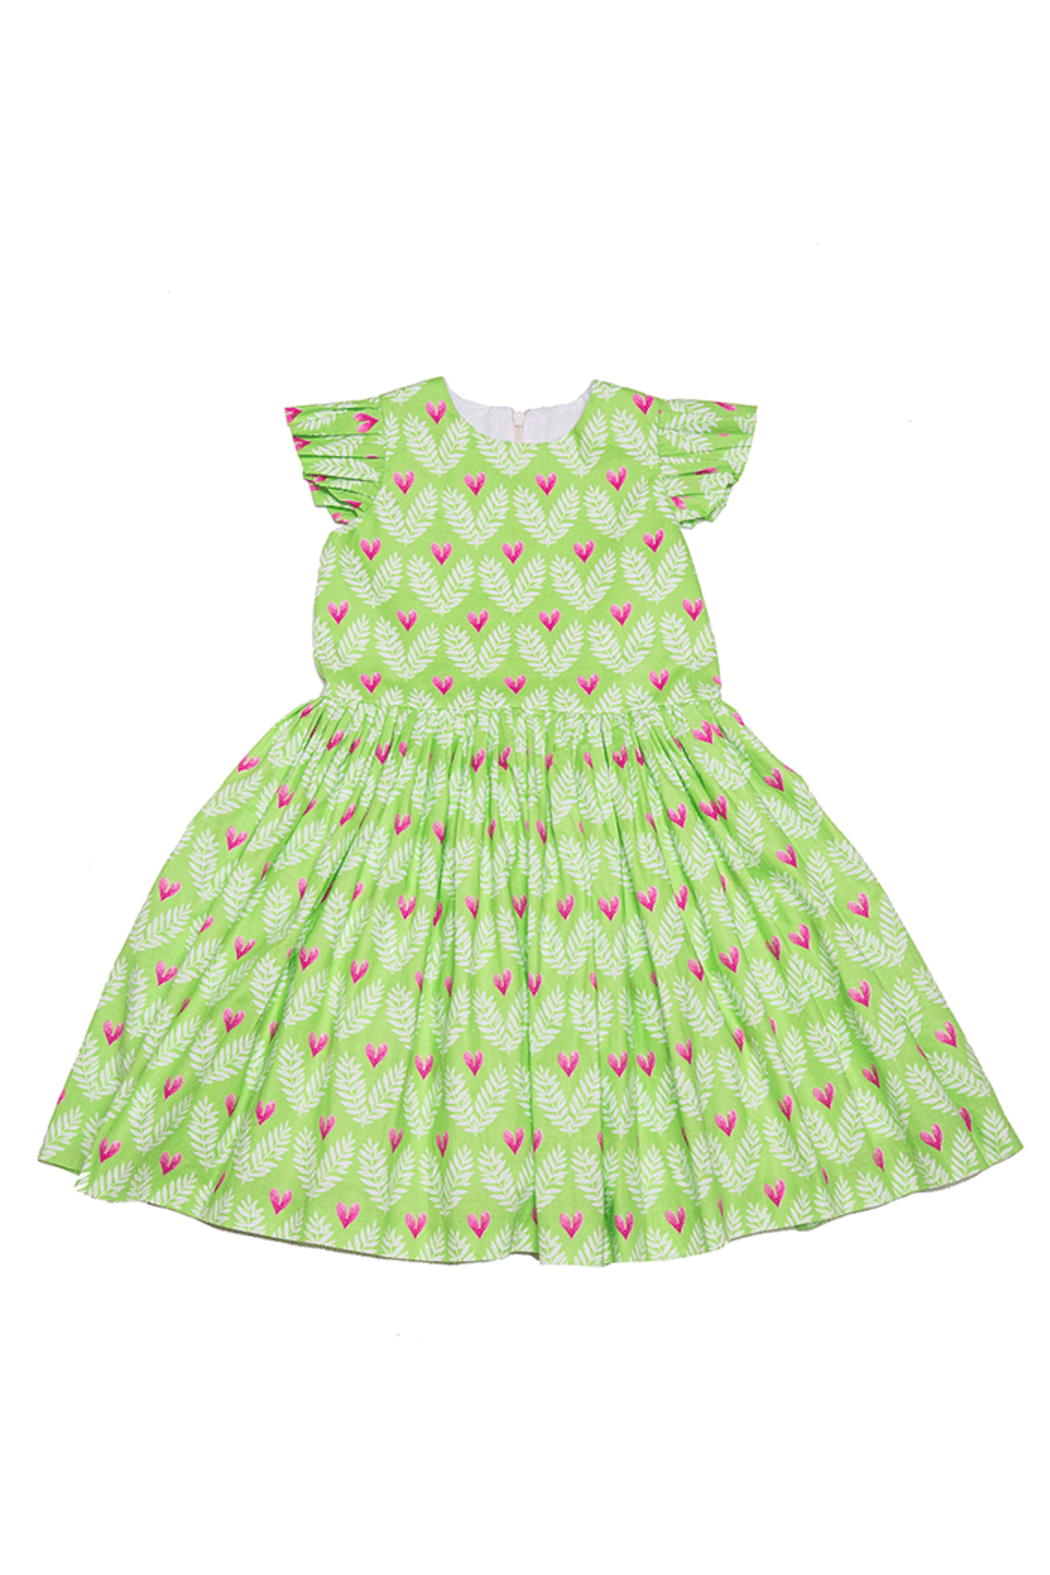 Mandy by Gema Amanda Dress Big Love Lime - Front Full Image